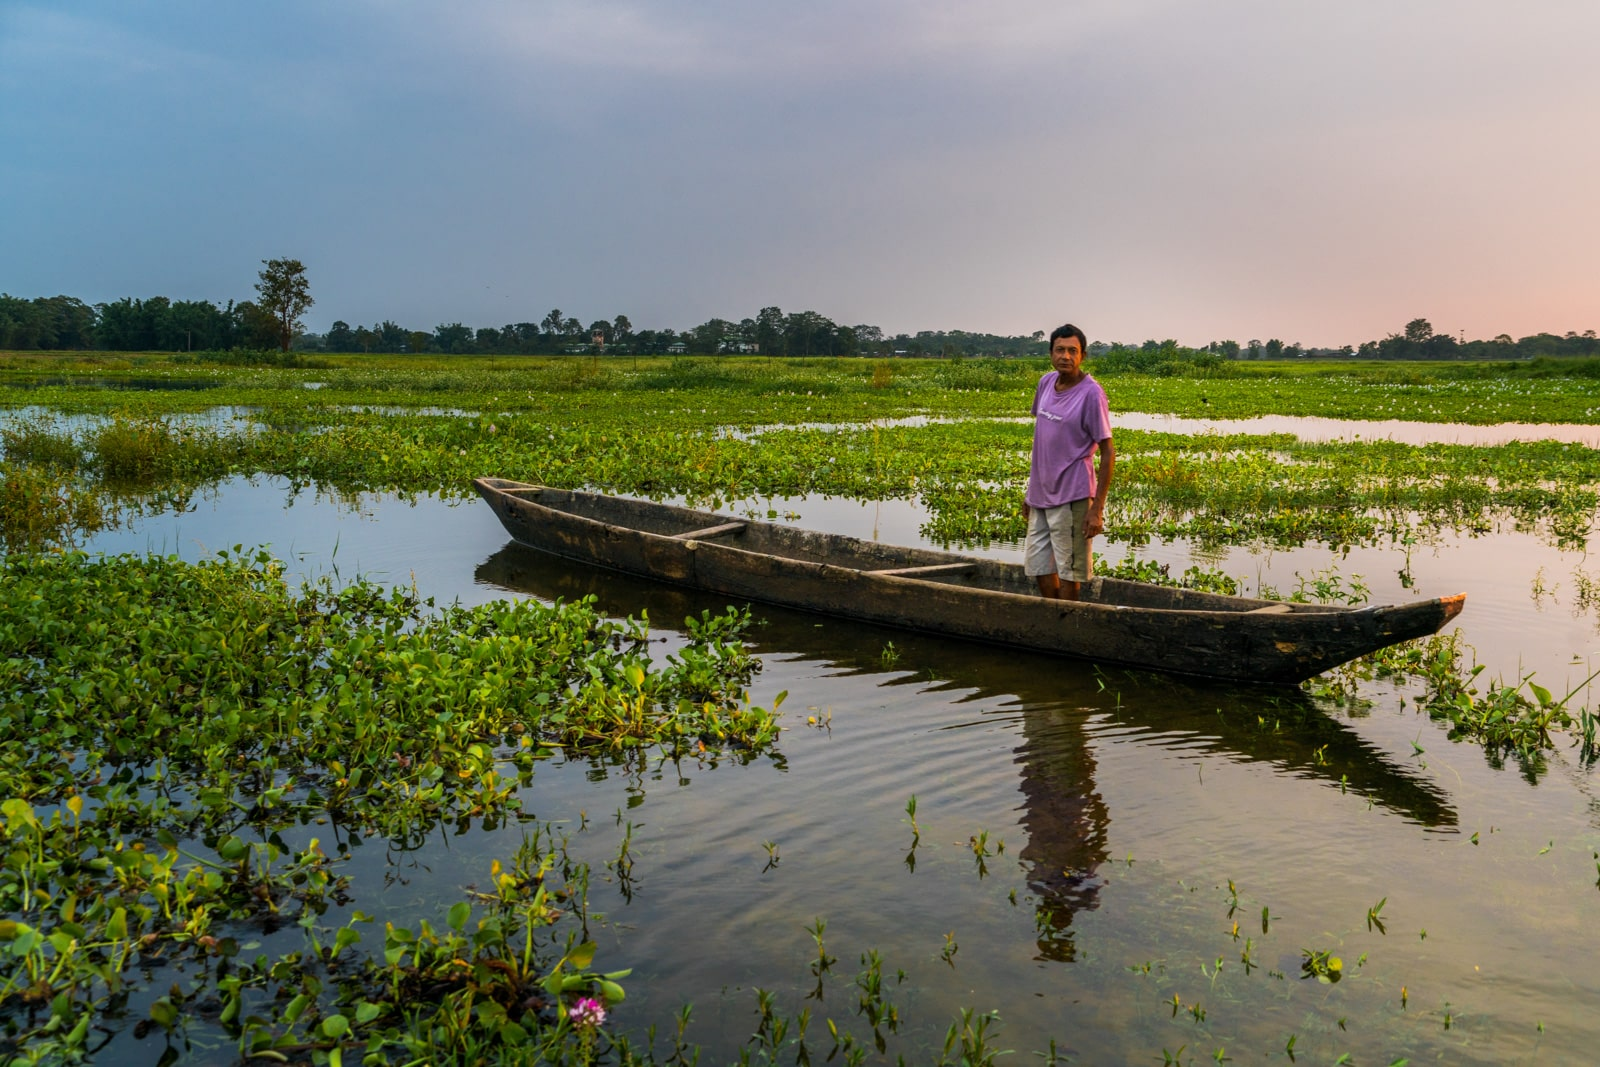 Local fisherman in a boat in Majuli river island in Assam, India - Lost With Purpose travel blog